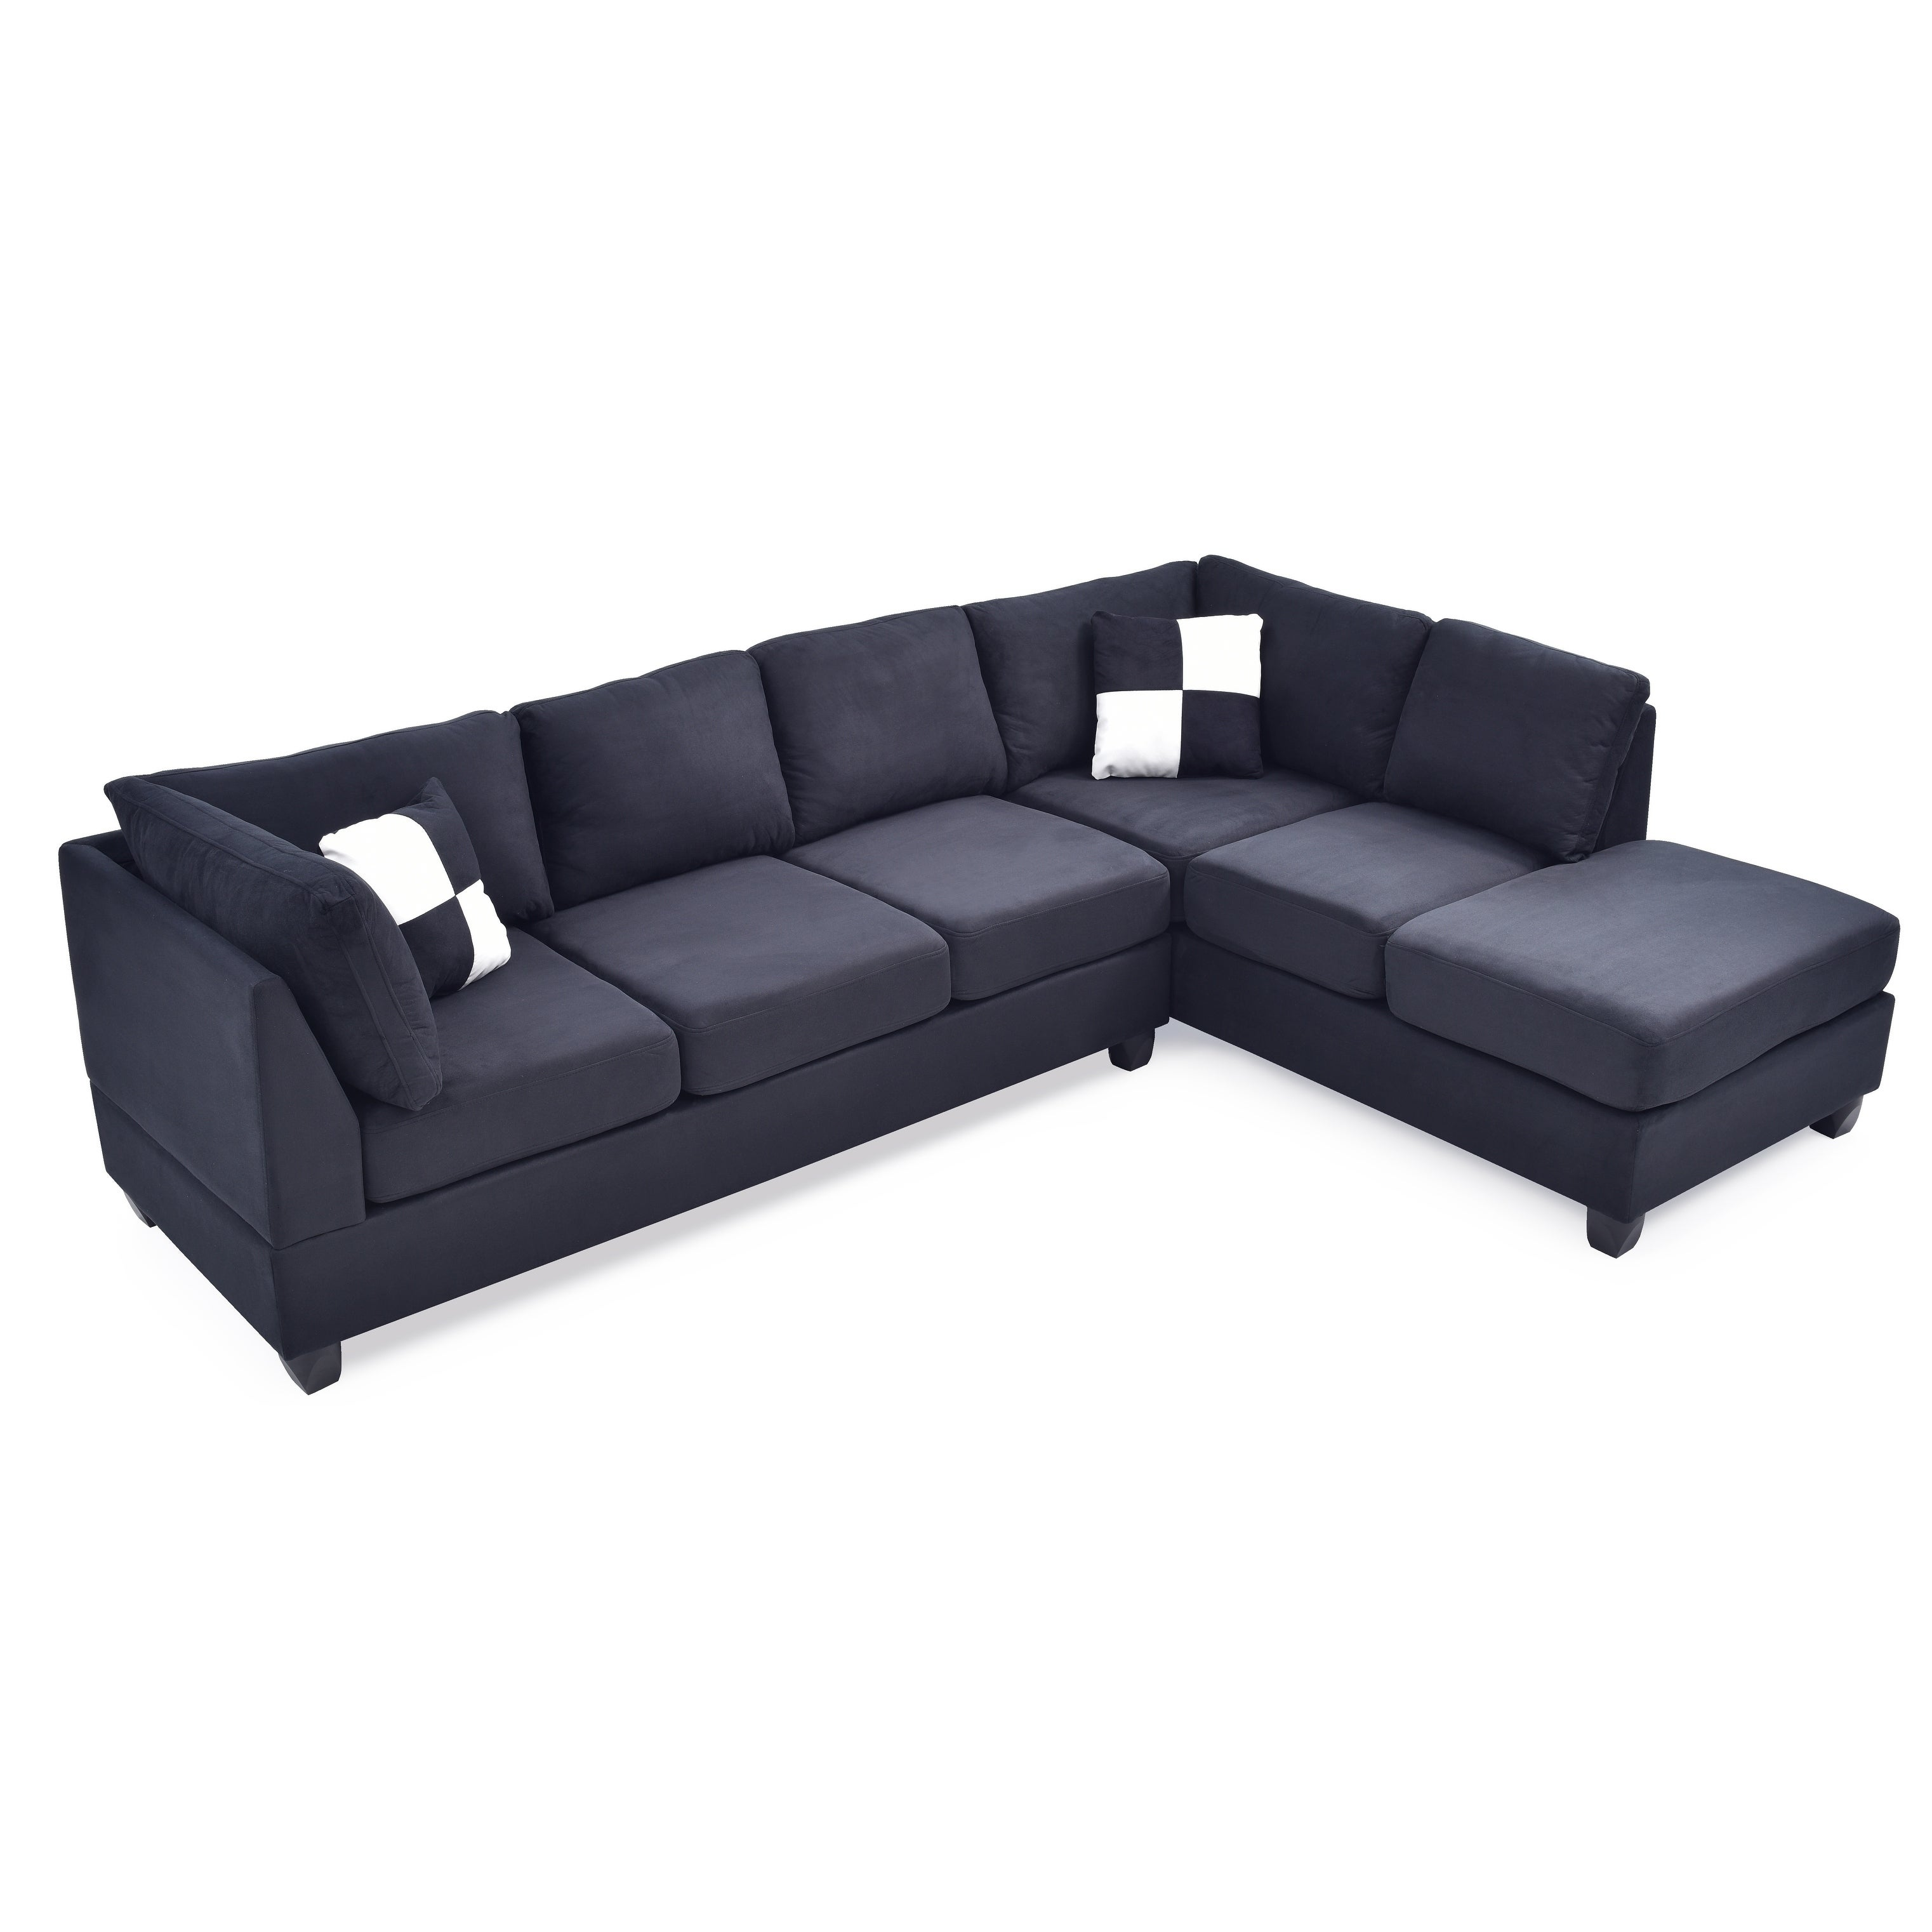 LYKE Home Braxton Black Sectional